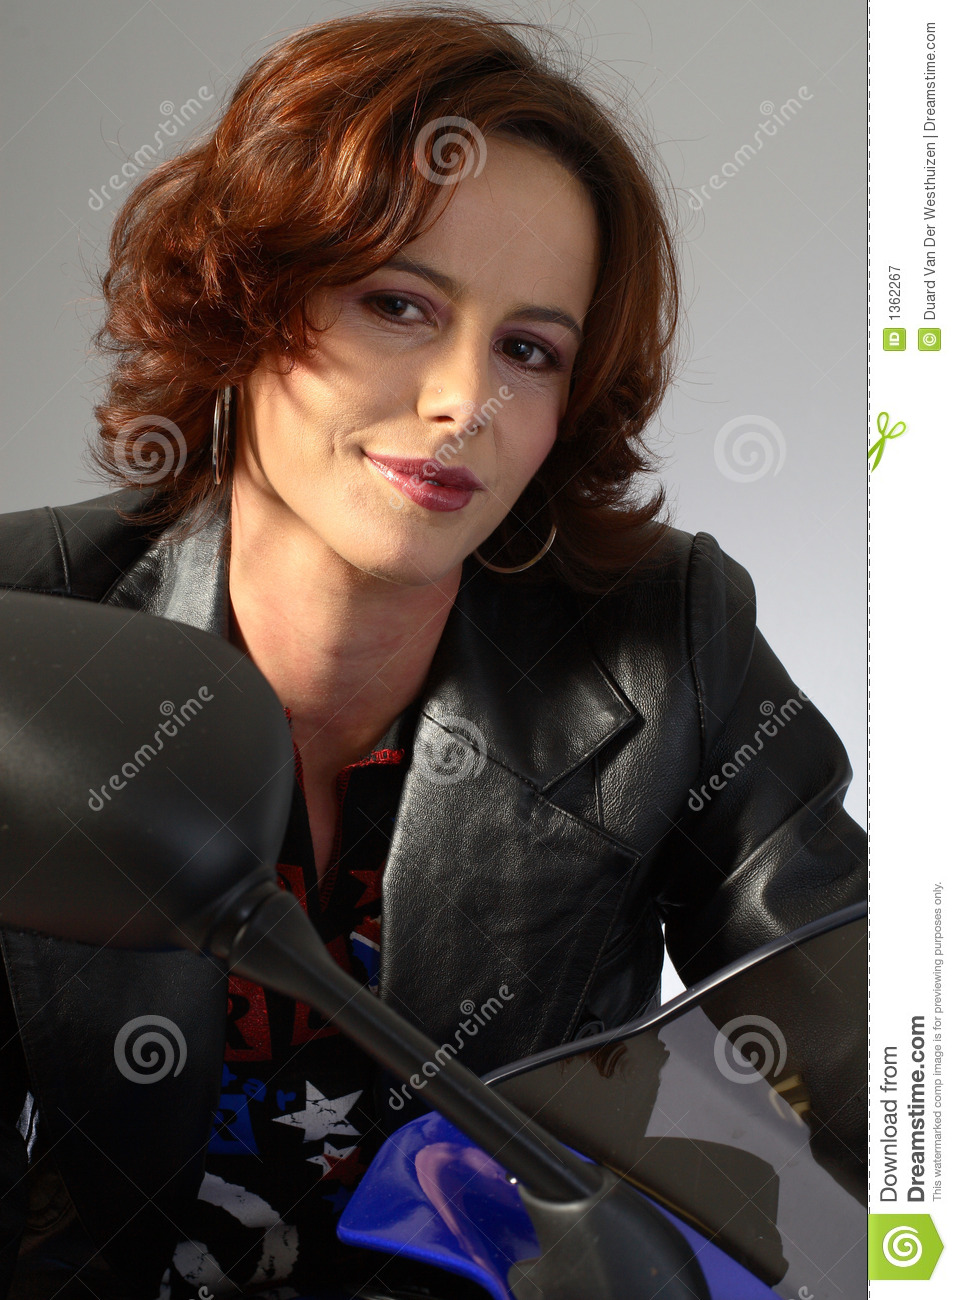 Brunette Girl On Motorcycle Leather Jacket Royalty Free Stock